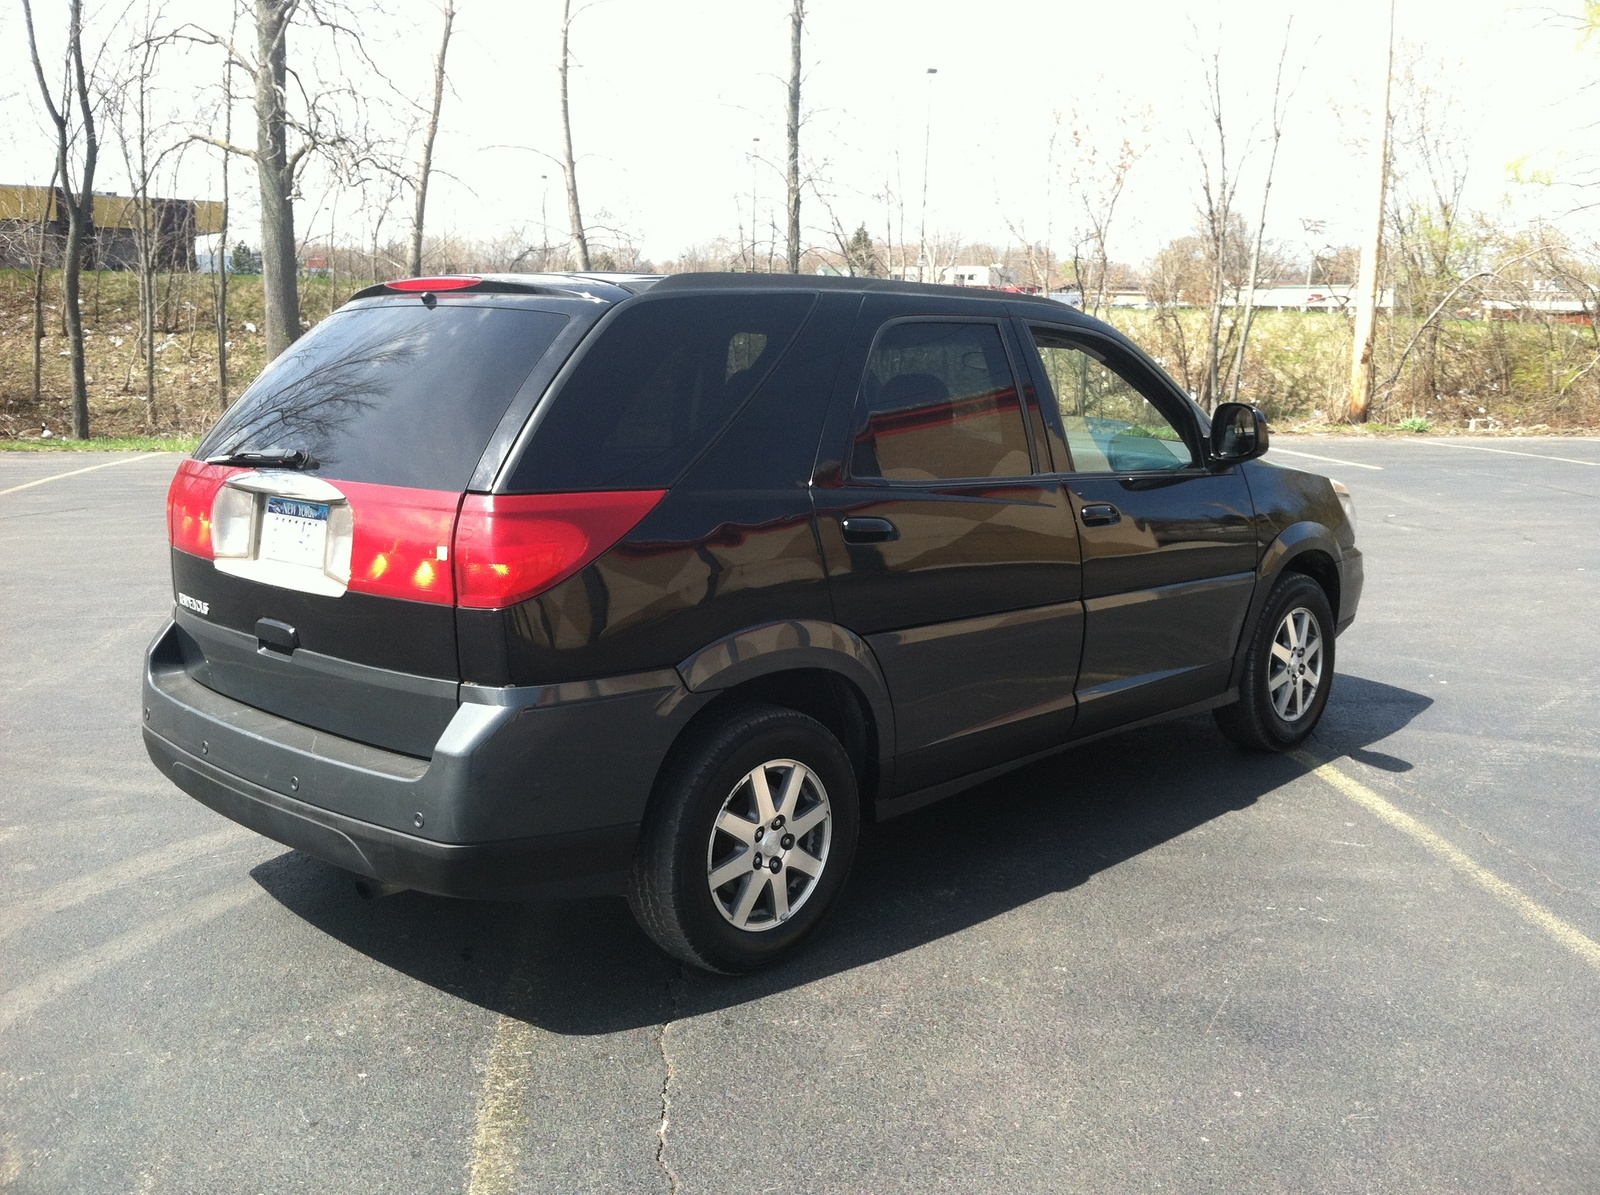 What s your take on the 2003 Buick Rendezvous